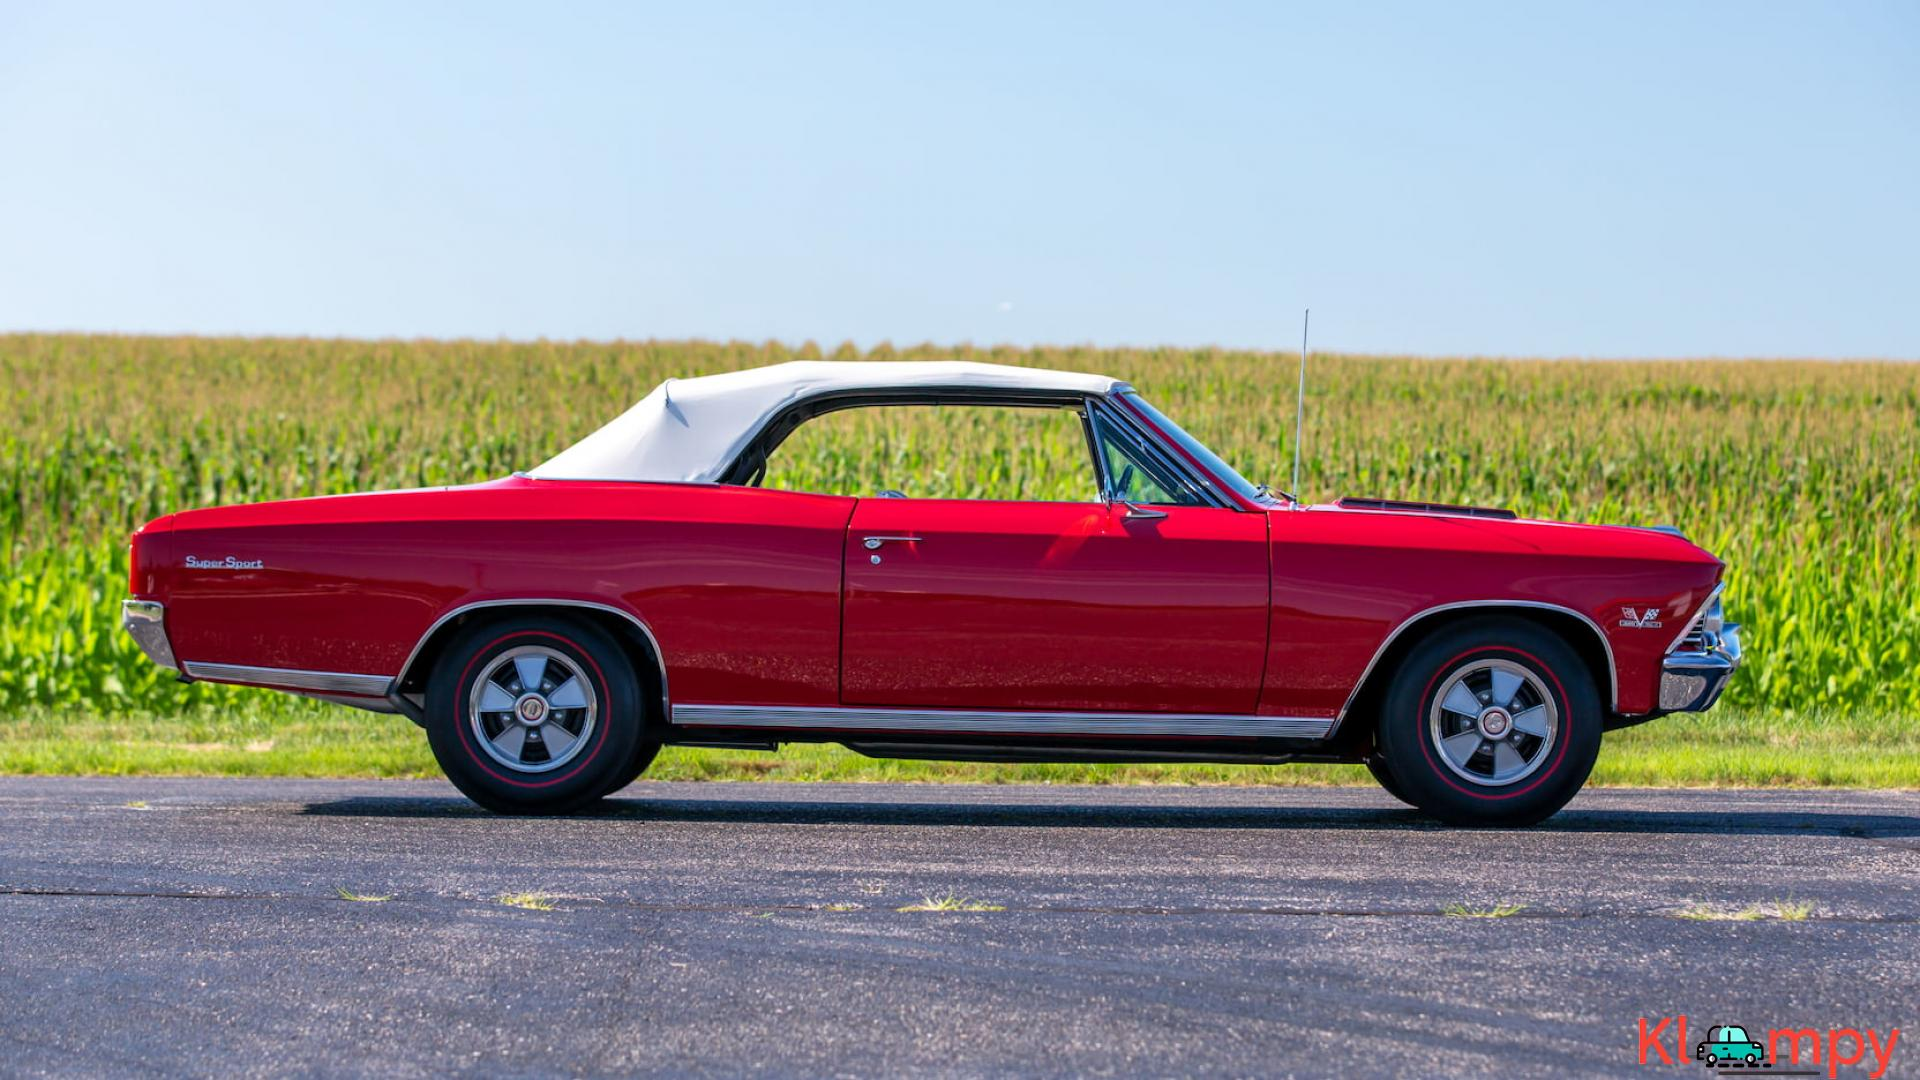 1966 Chevrolet Chevelle SS Convertible - 9/15